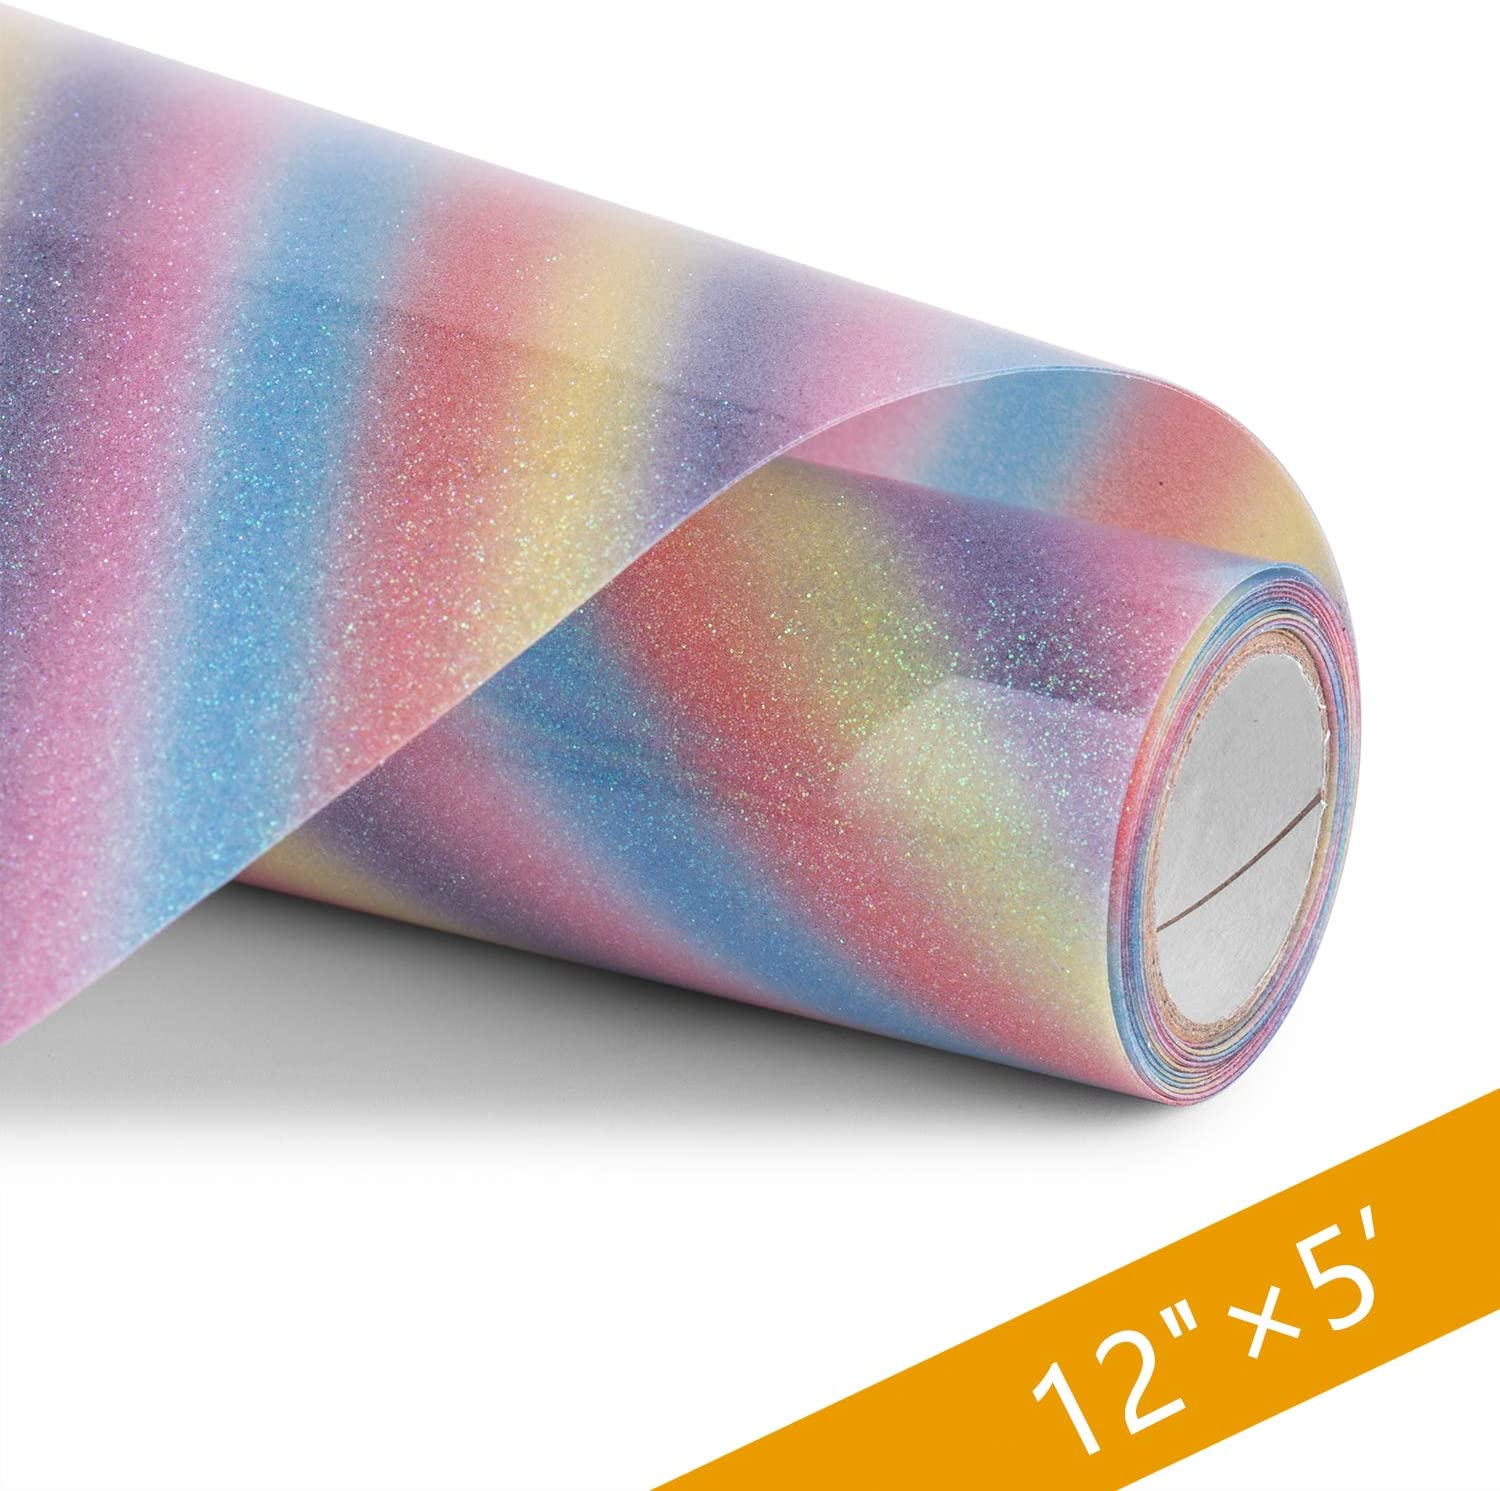 Rainbow Glitter HTV Vinyl HenPisen 12inx5ft Heat Transfer Vinyl for Cricut /& Silhouette Cameo Easy to Cut /& Weed Pillows and Other Textiles Durable,Vibrant Color Iron on Vinyl for DIY T-Shirts Caps